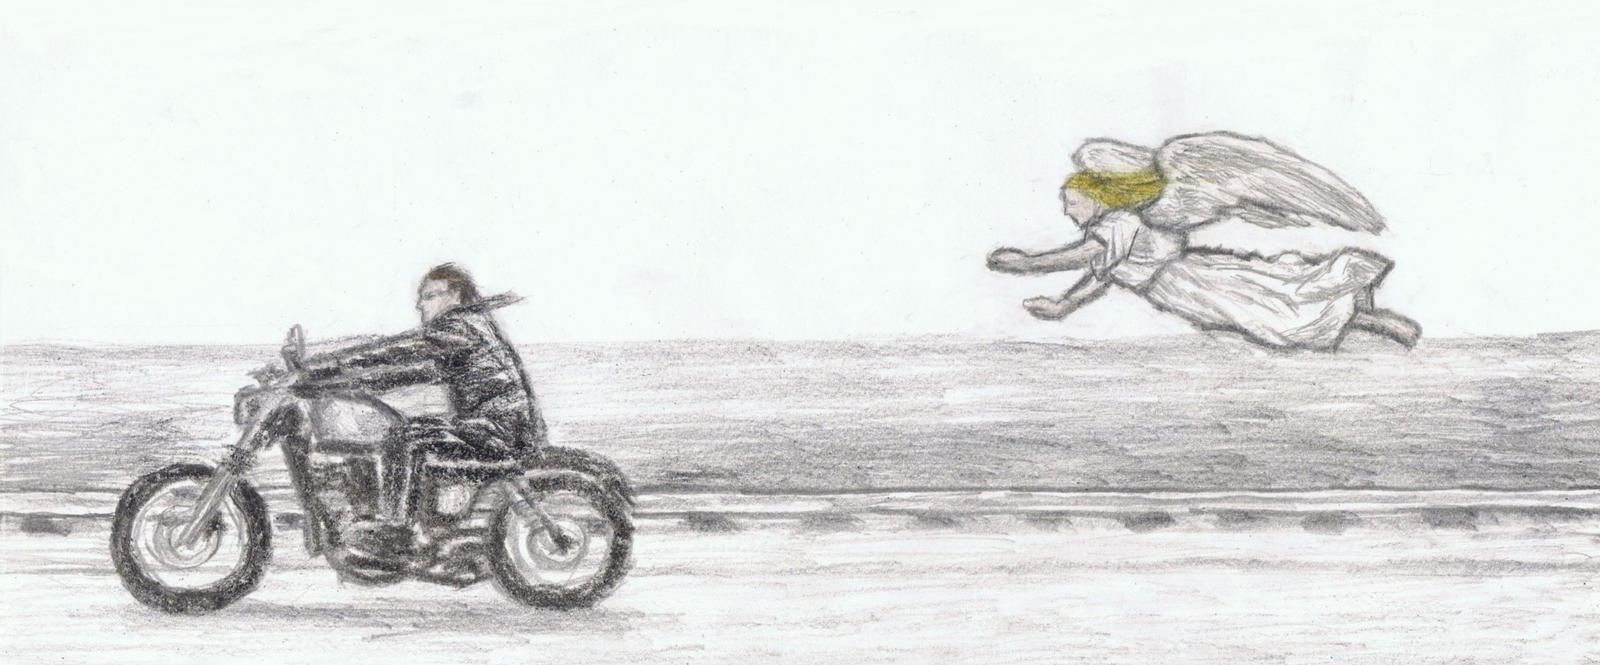 Norman Reedus riding motorcycle by gagambo